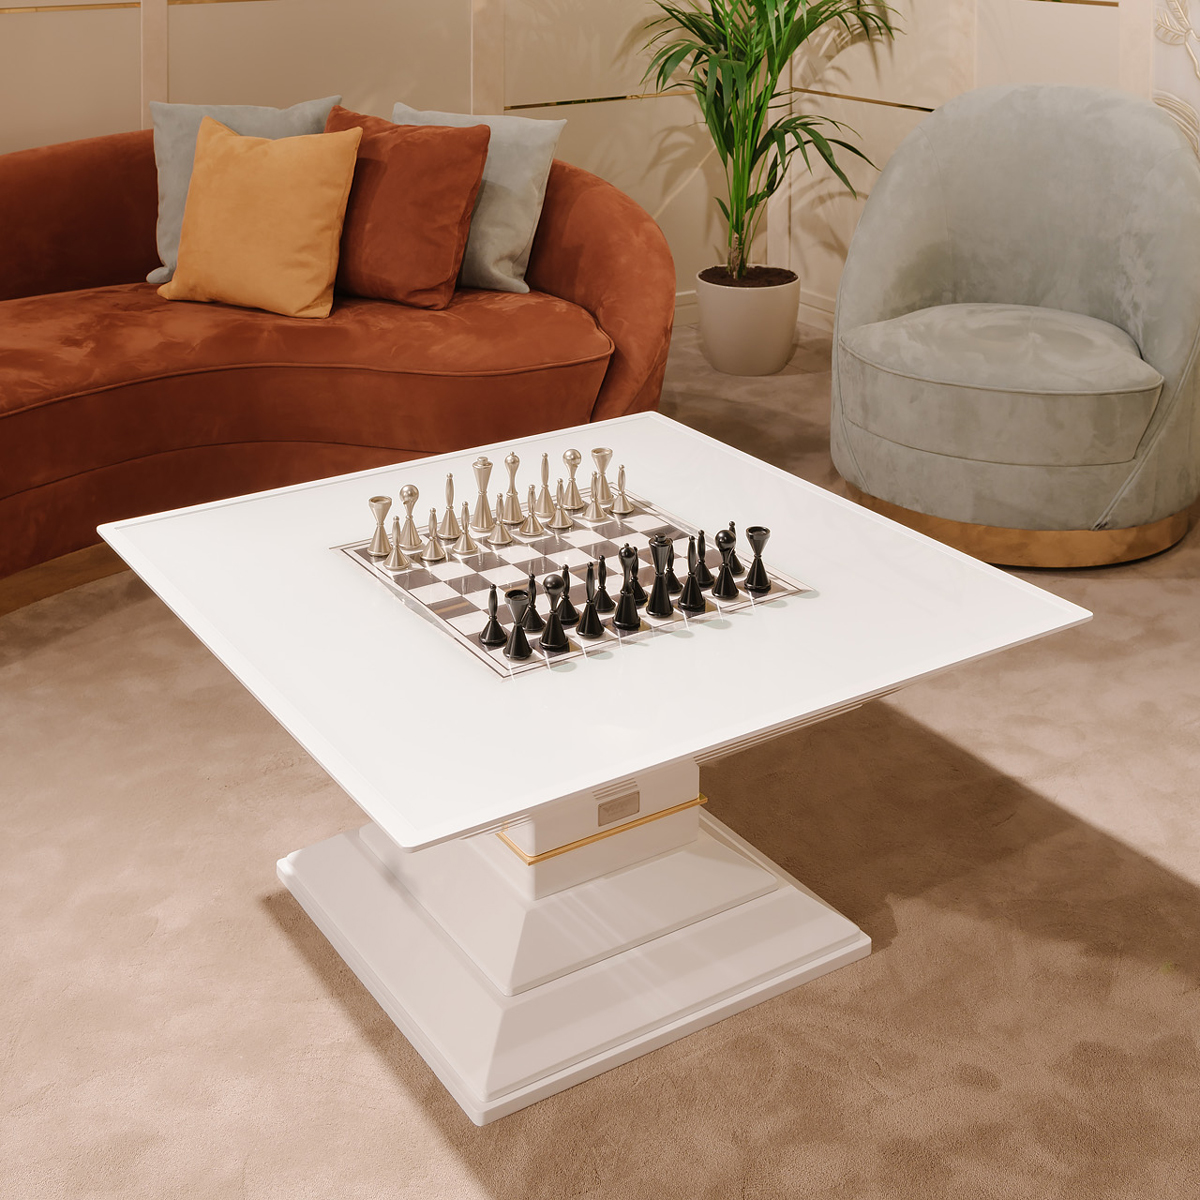 Stylish Scaccomatto Chess And Coffee Table Italian Designer Luxury Game Room Furniture At Cassoni